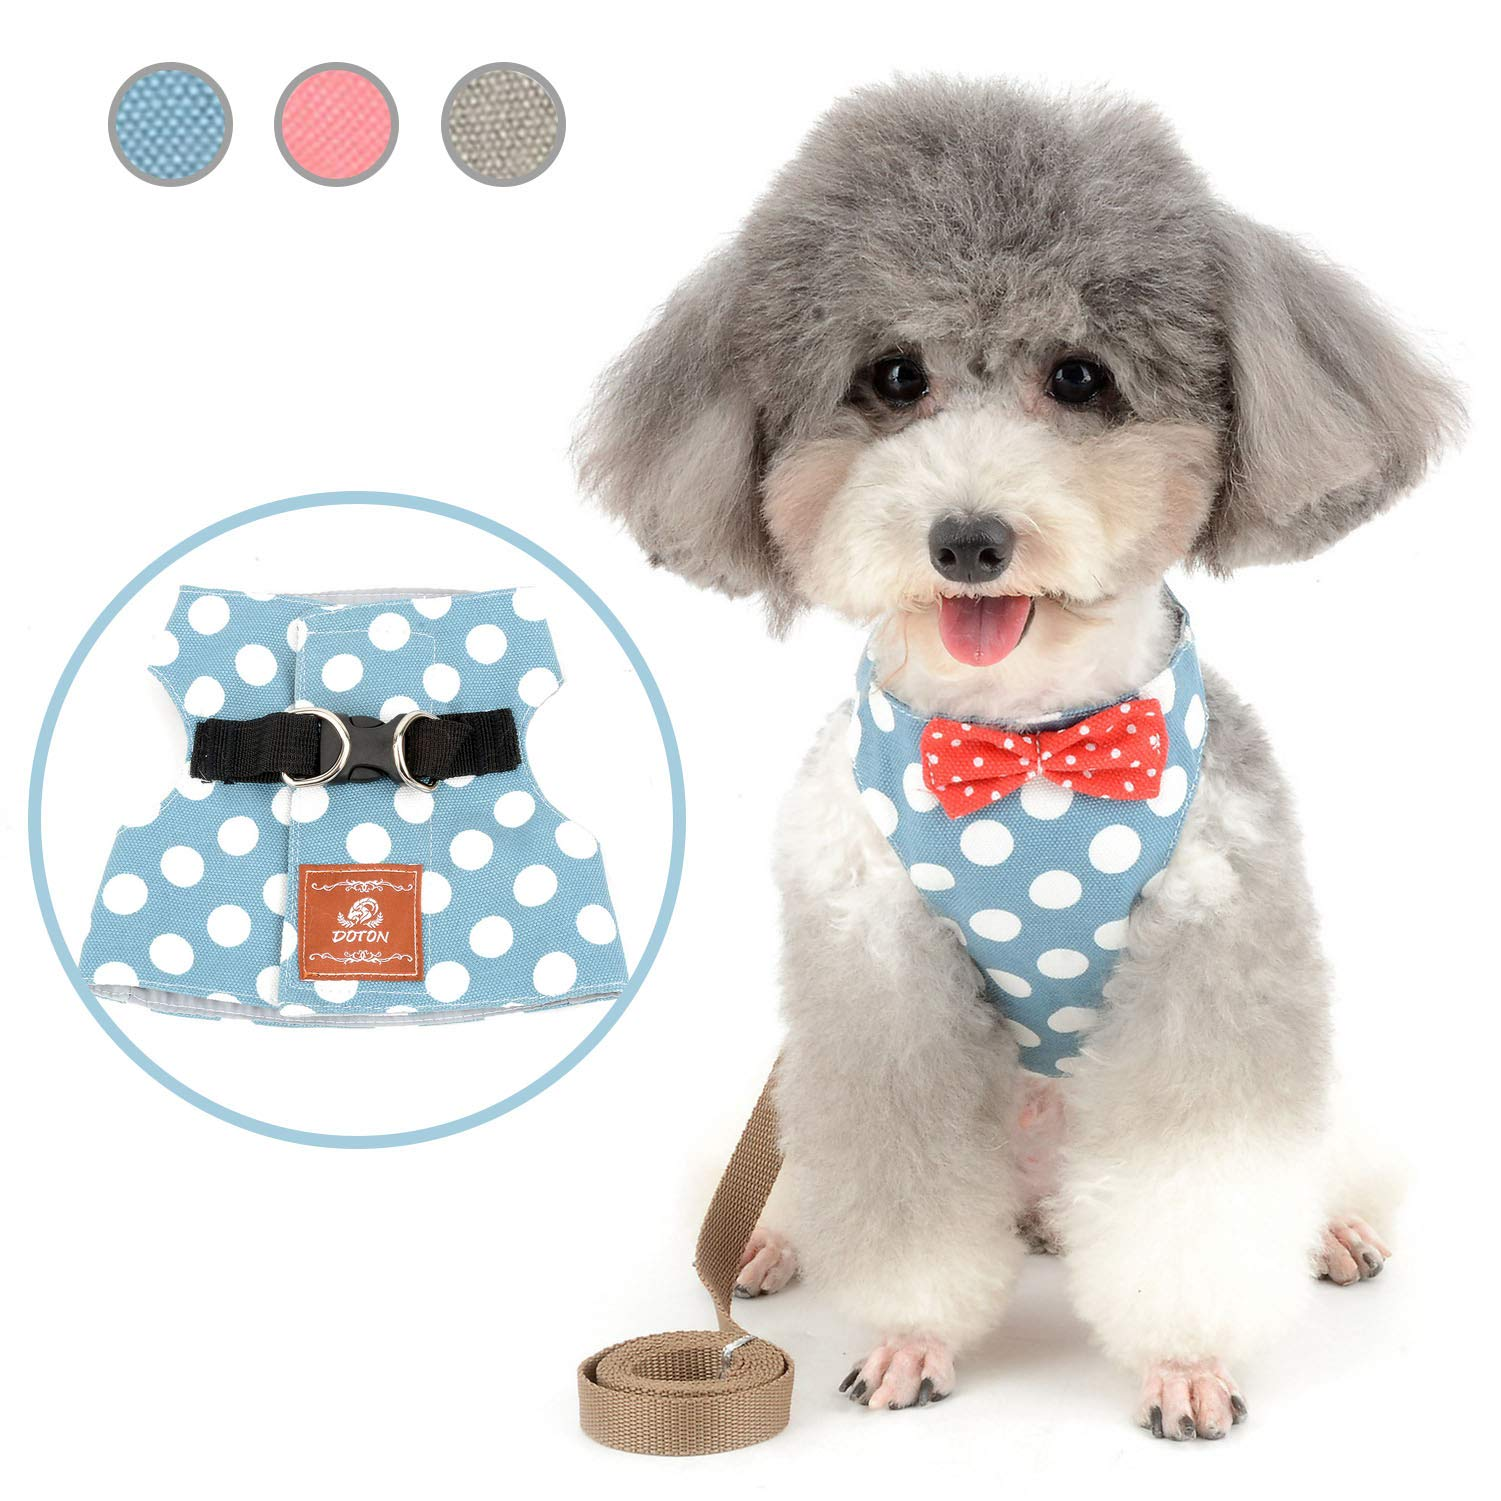 Zunea Small Toy Dog Harness and Leash Set No Pull Escape Proof Cat Kitten Vest Harness with Bowknot Step in Puppy Chihuahua Polka Dot Easy on Jacket for Walking Blue M by Zunea